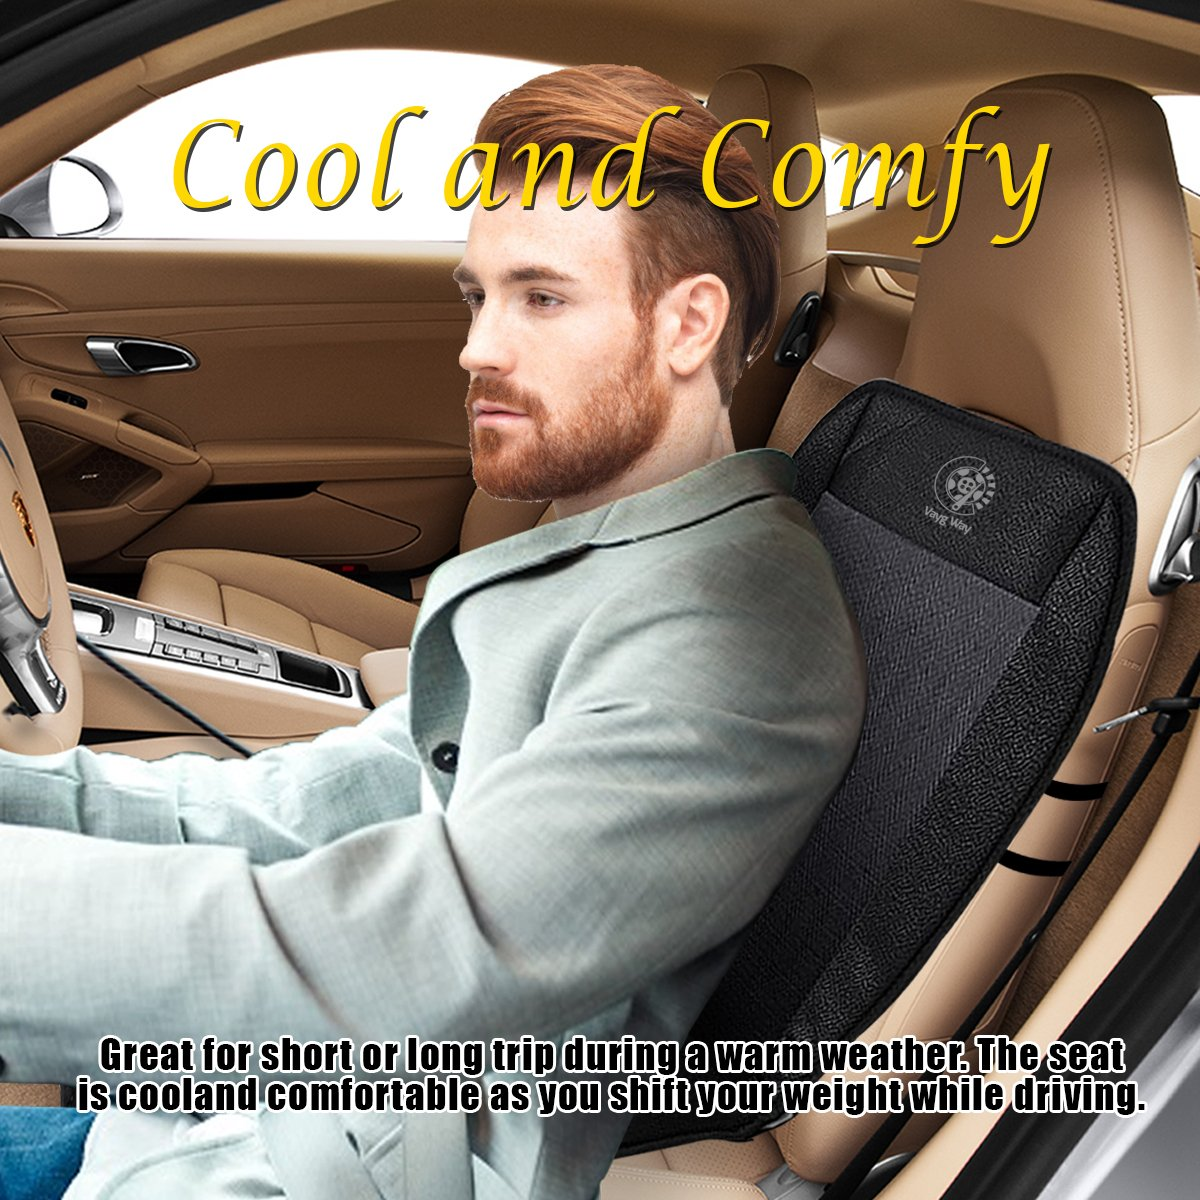 Amazon.com: VaygWay Car Heated Seat Cover Cushion Hot Warmer - 2-Piece Set 12V Heating Warmer Pad Hot Gray Cover: Automotive